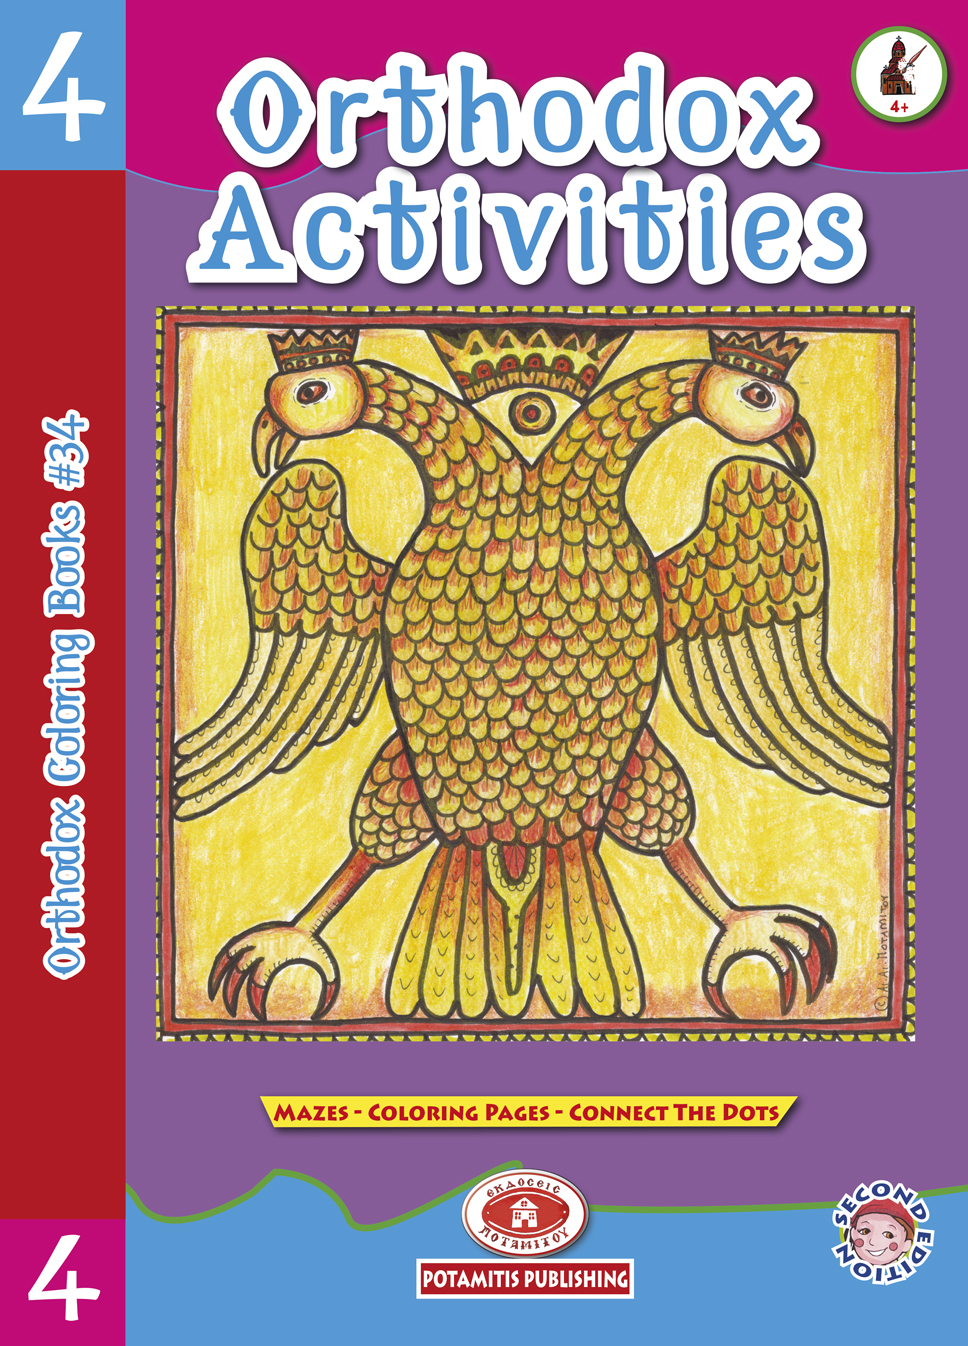 Orthodox Coloring Books #34 - Orthodox Activities #4